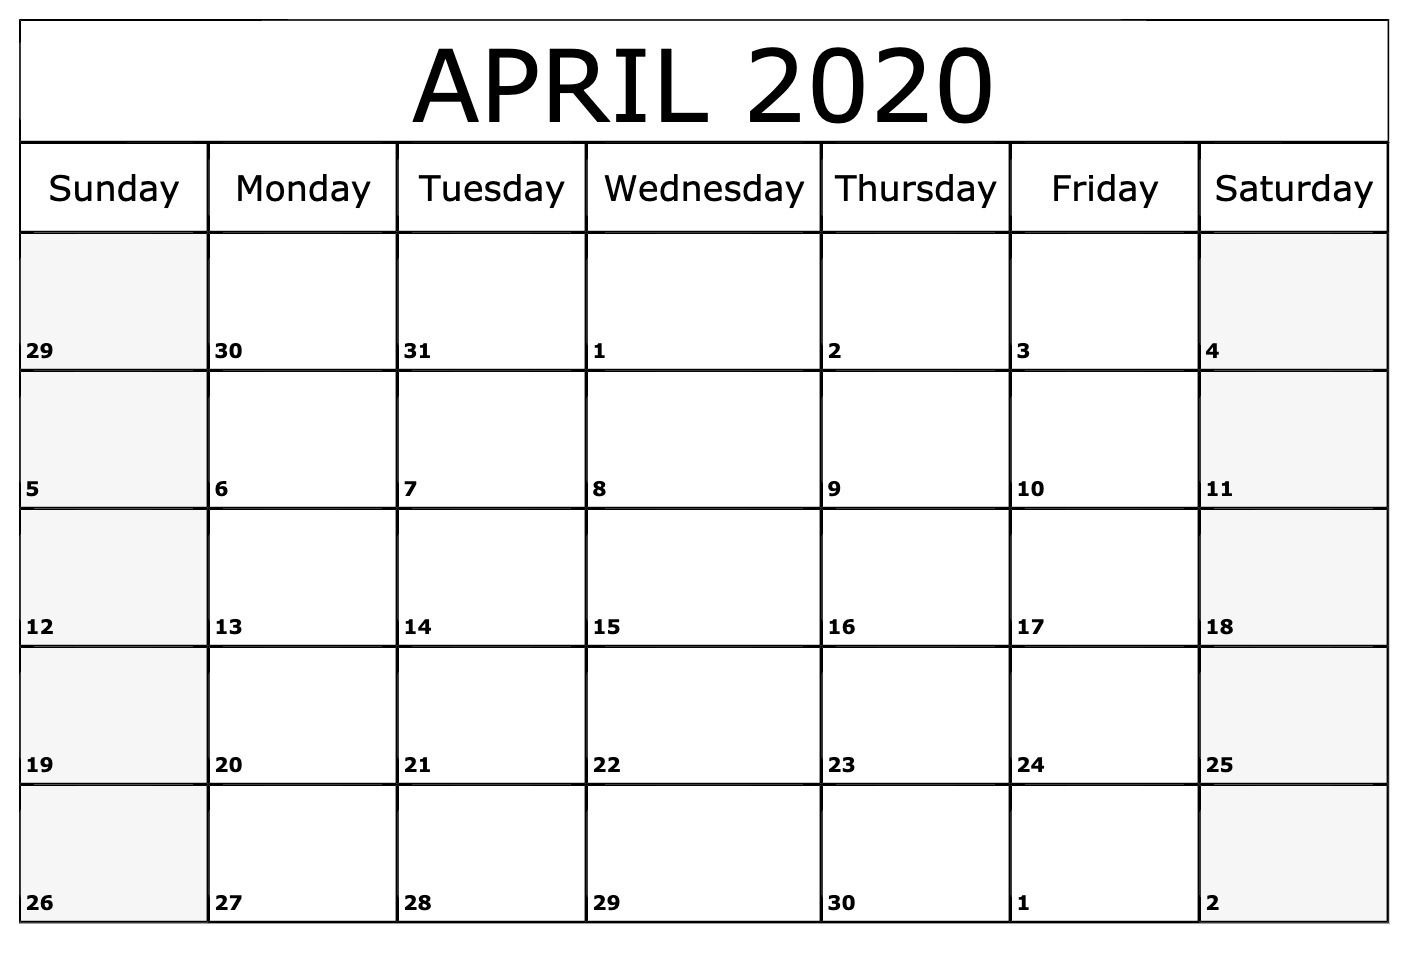 Blank Calendar Page For April 2020 | Free Printable Calendar